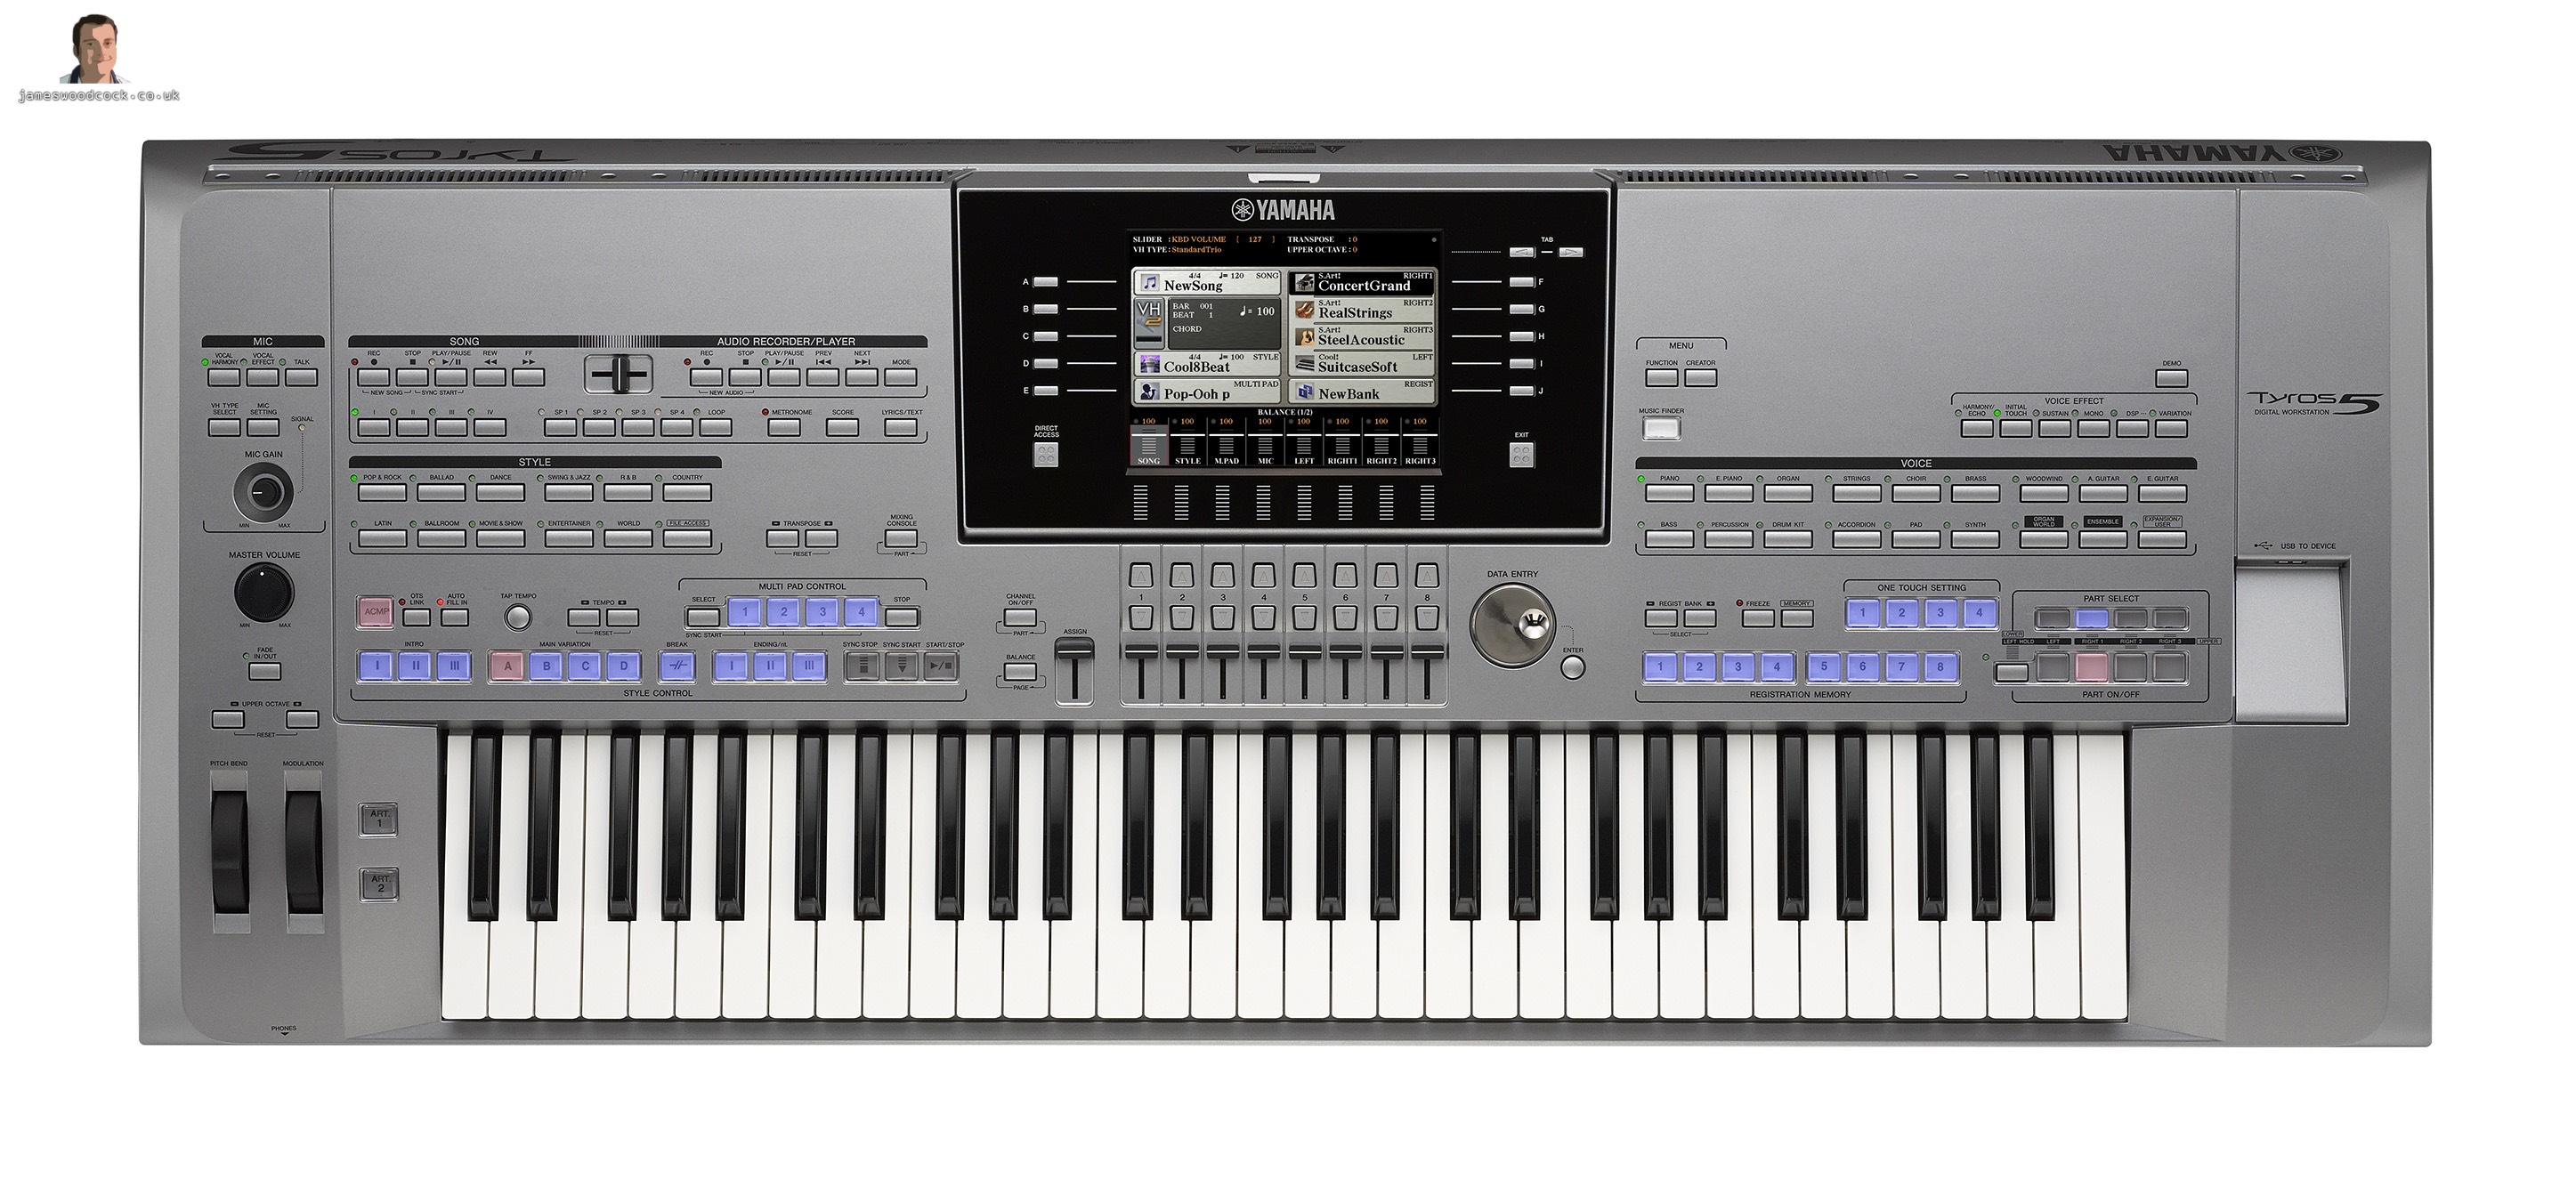 Yamaha tyros 5 keyboard main demonstration images for Yamaha tyros 5